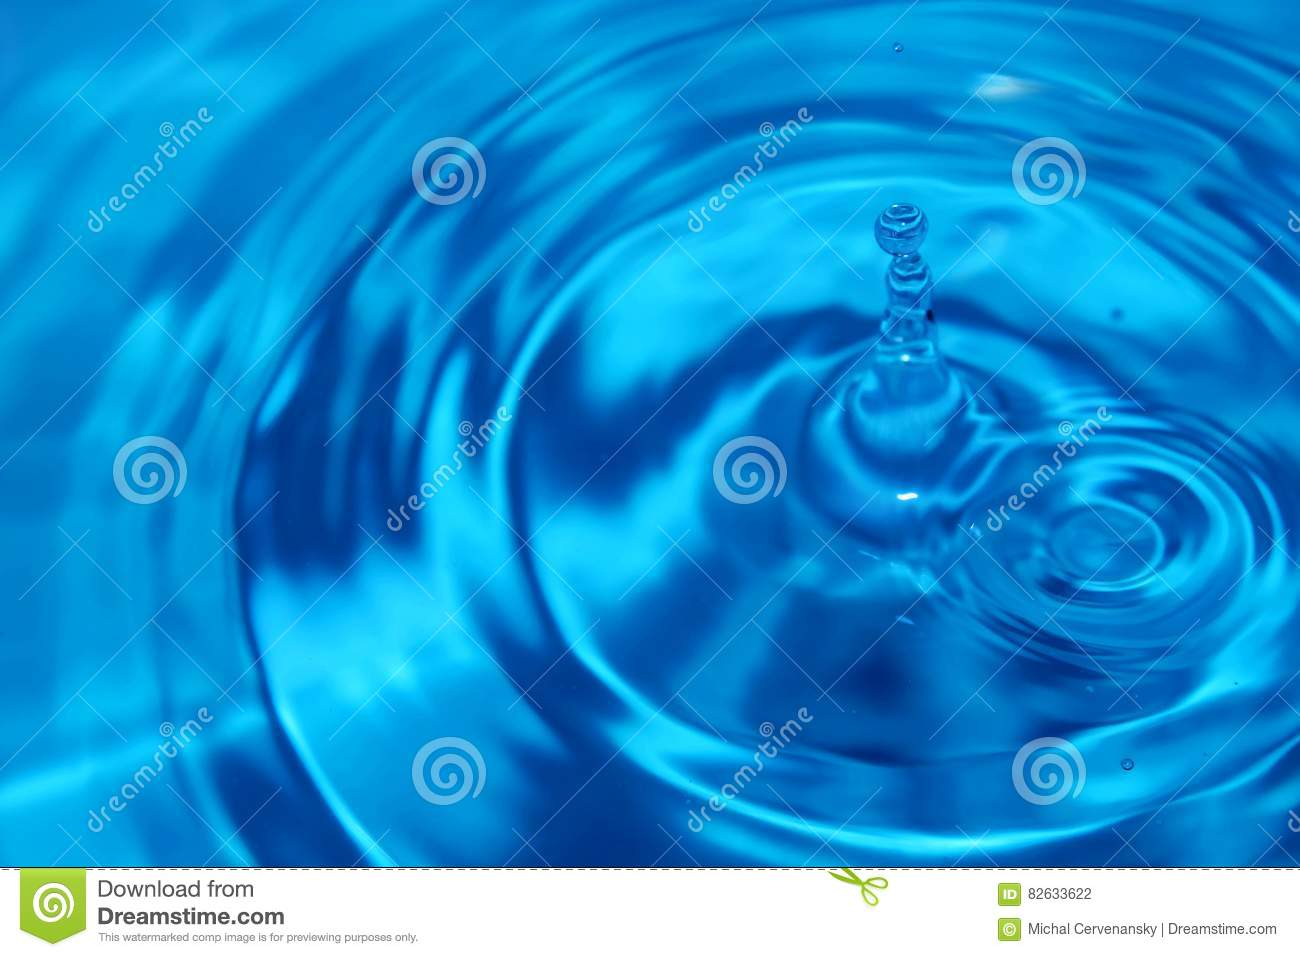 Blue water drop with waves on the surface. Second